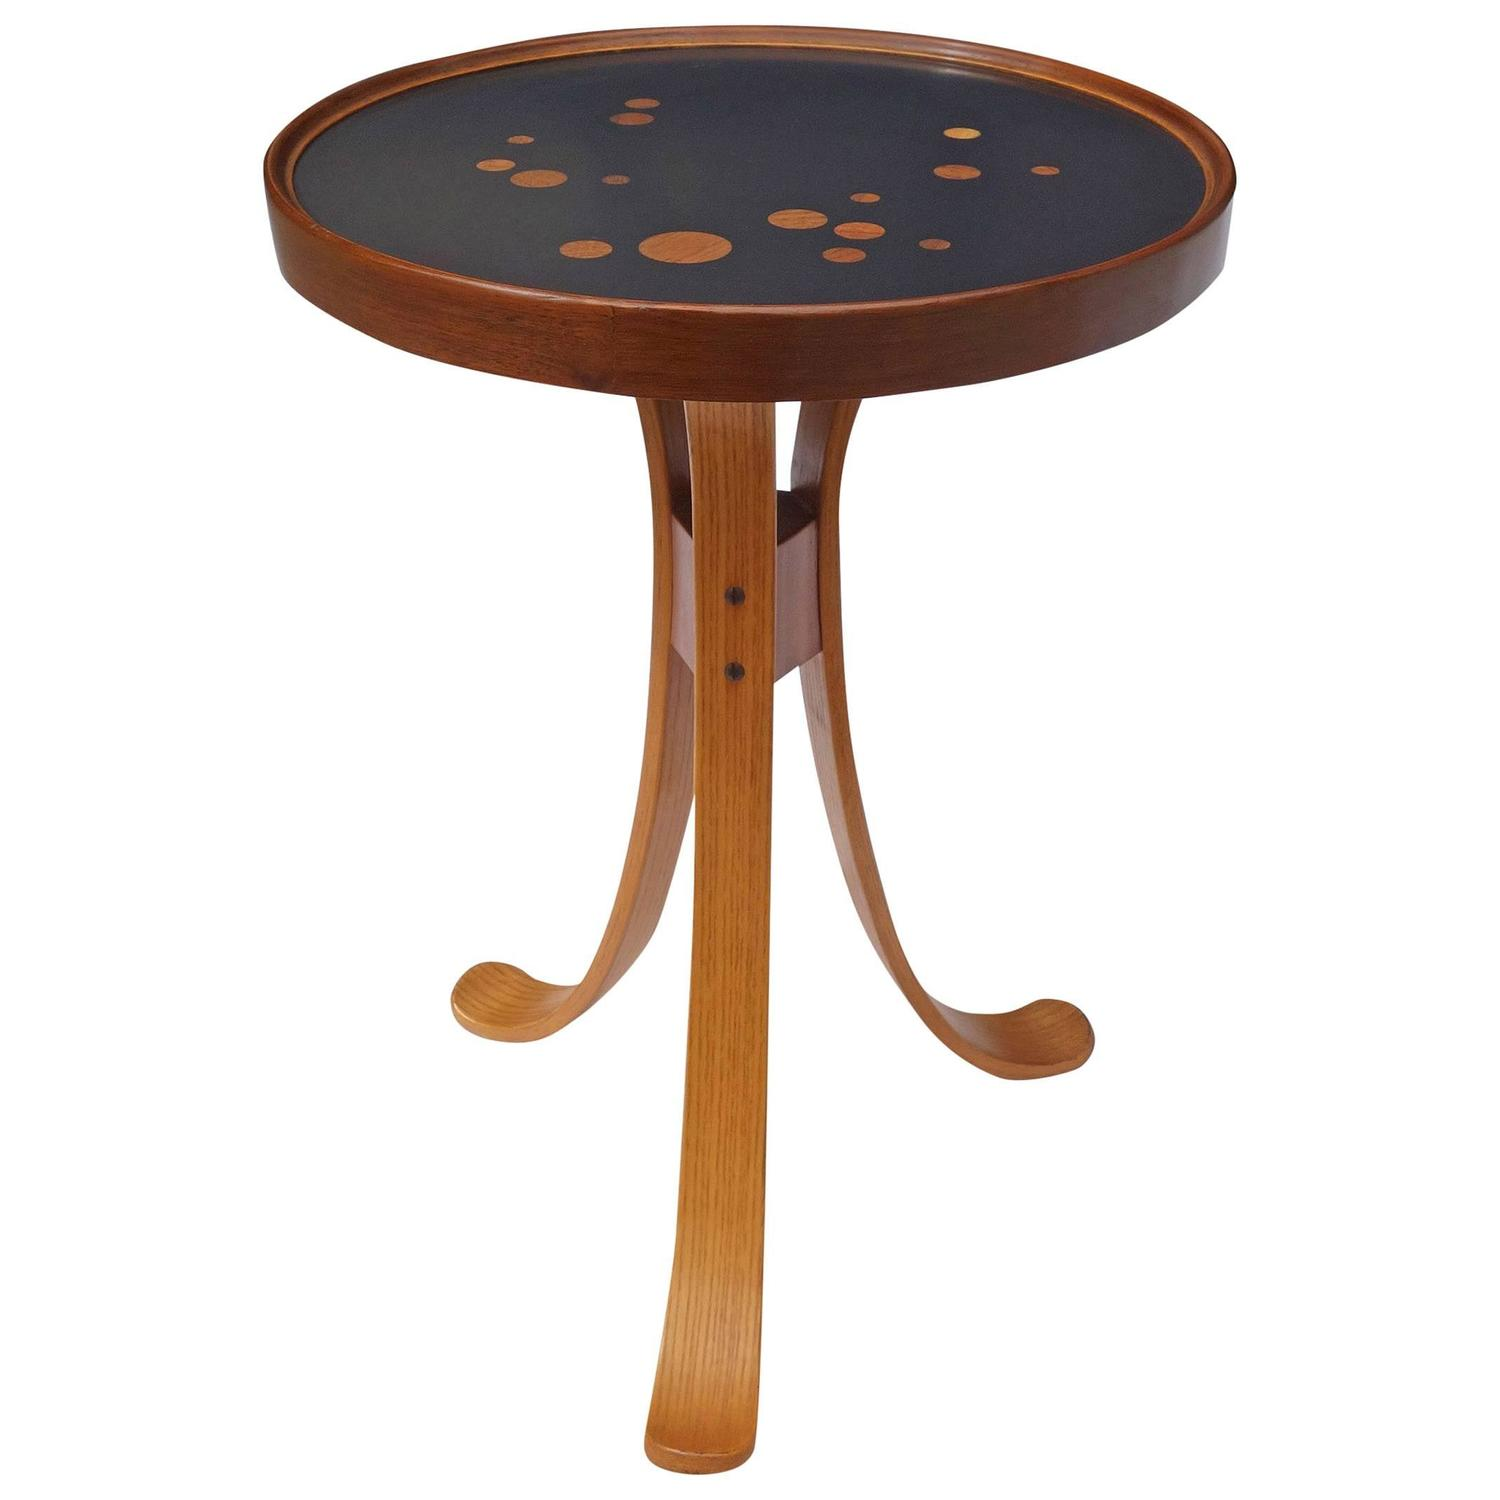 Edward Wormley for Dunbar Constellation Table at 1stdibs